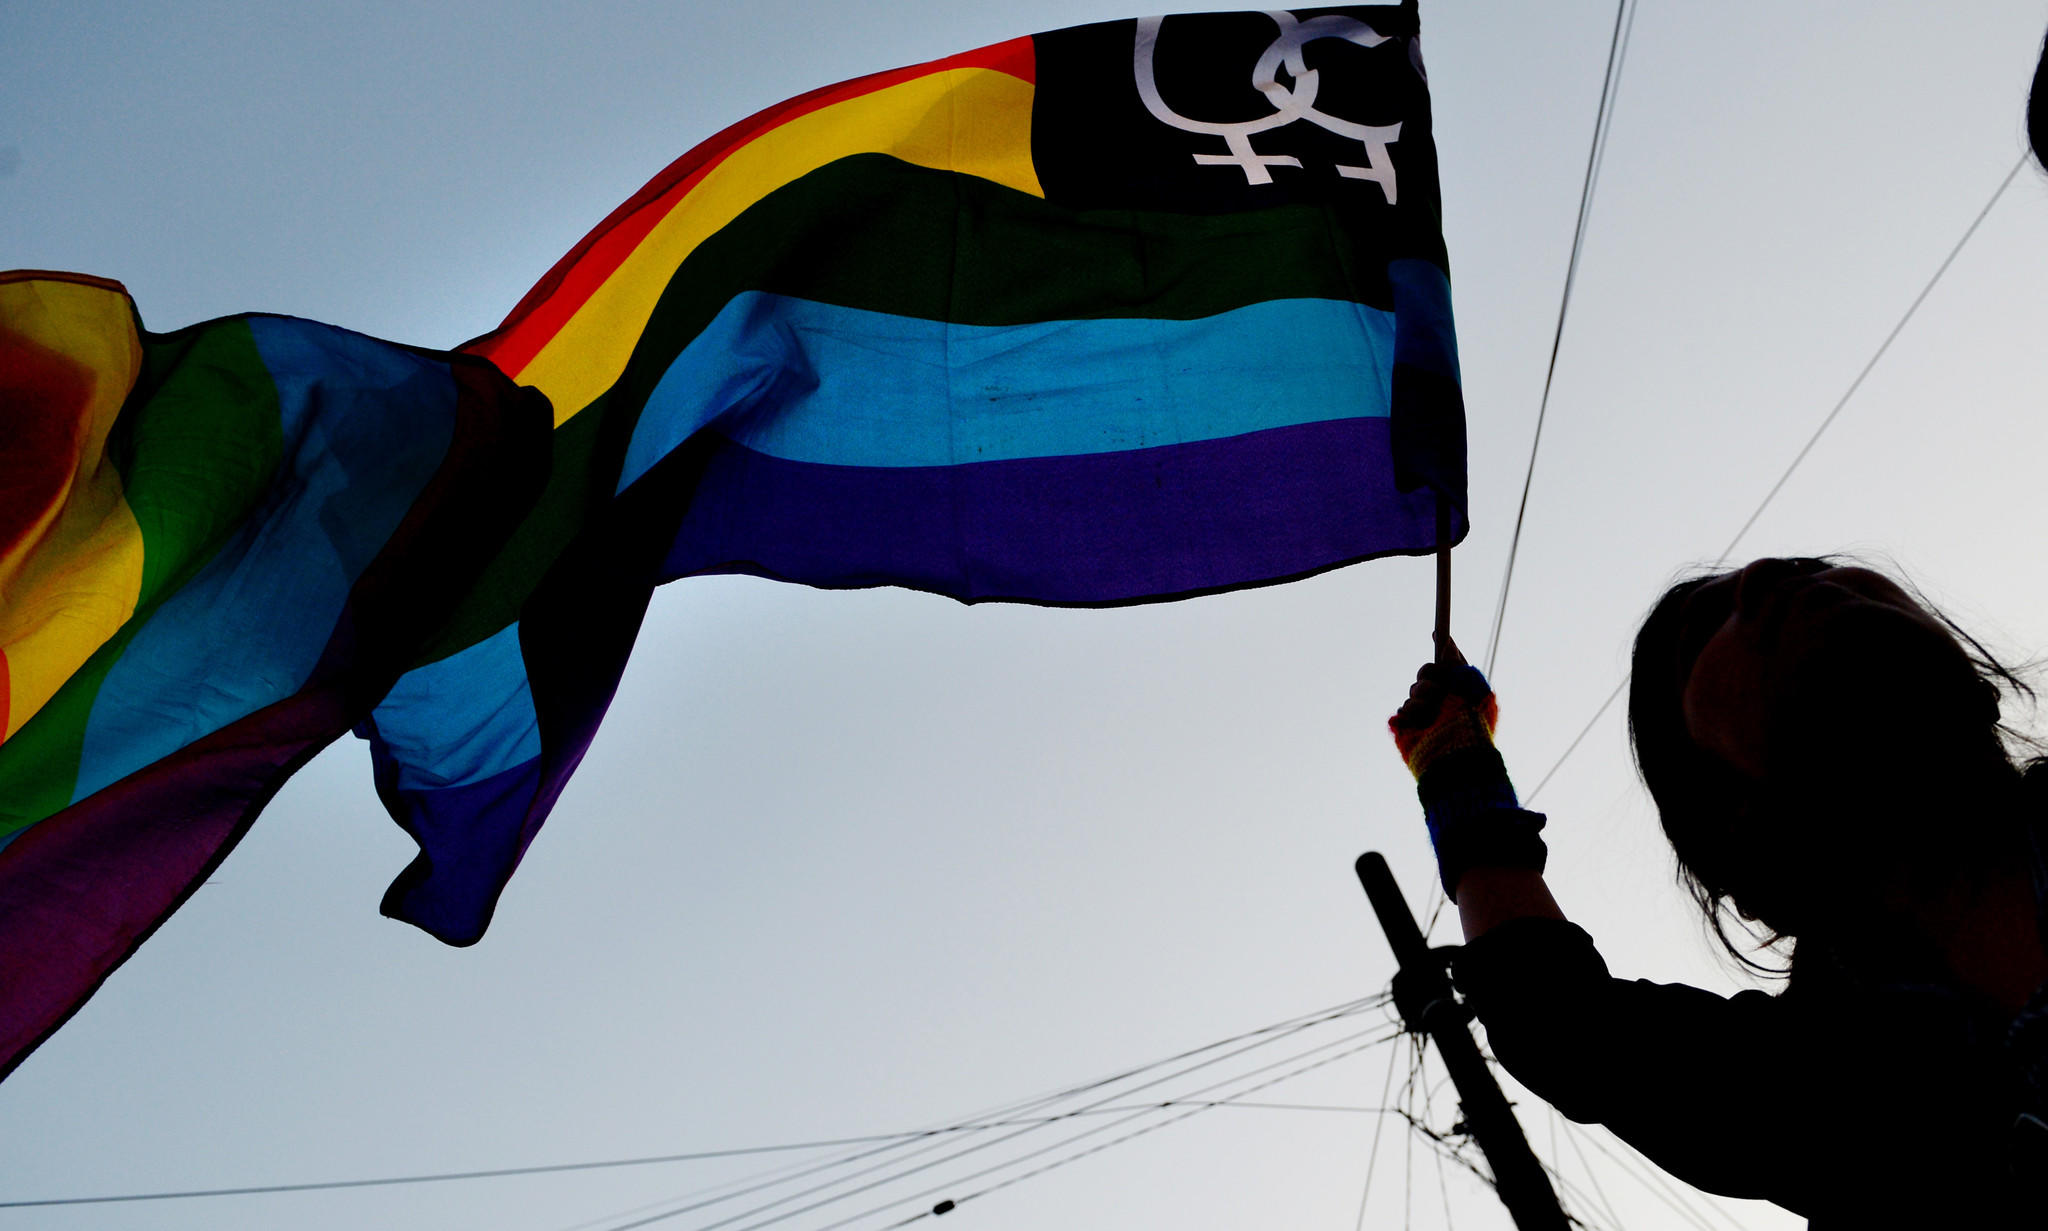 An gay-rights activist waves a rainbow flag during a protest against the Indian Supreme Court ruling reinstating a ban on gay sex.